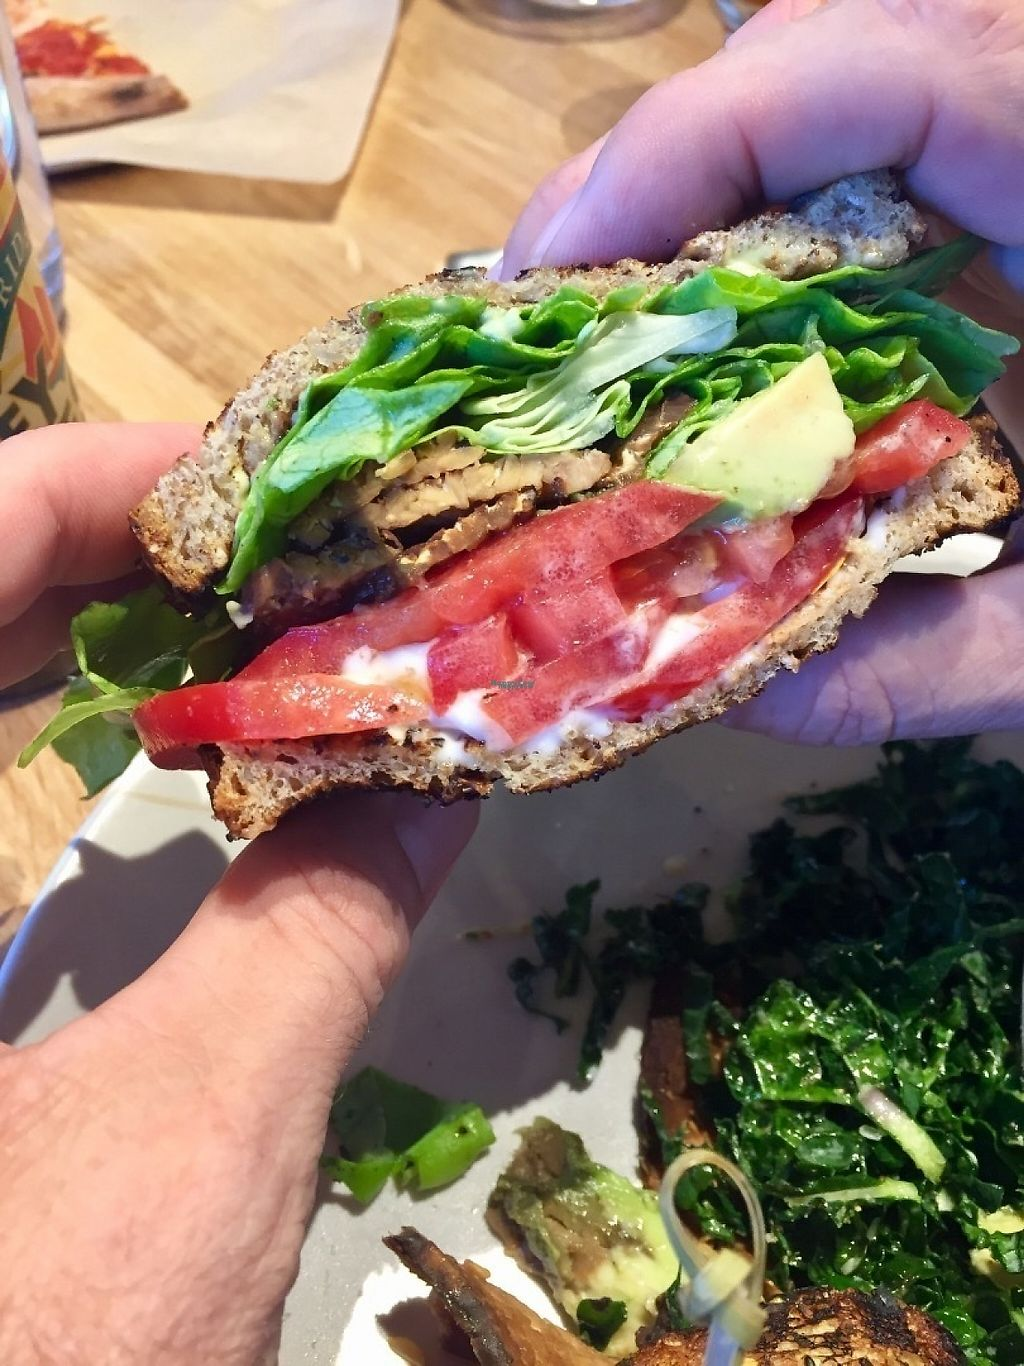 """Photo of True Food Kitchen  by <a href=""""/members/profile/BevinCox"""">BevinCox</a> <br/>TLT sandwich <br/> April 9, 2017  - <a href='/contact/abuse/image/89851/246013'>Report</a>"""